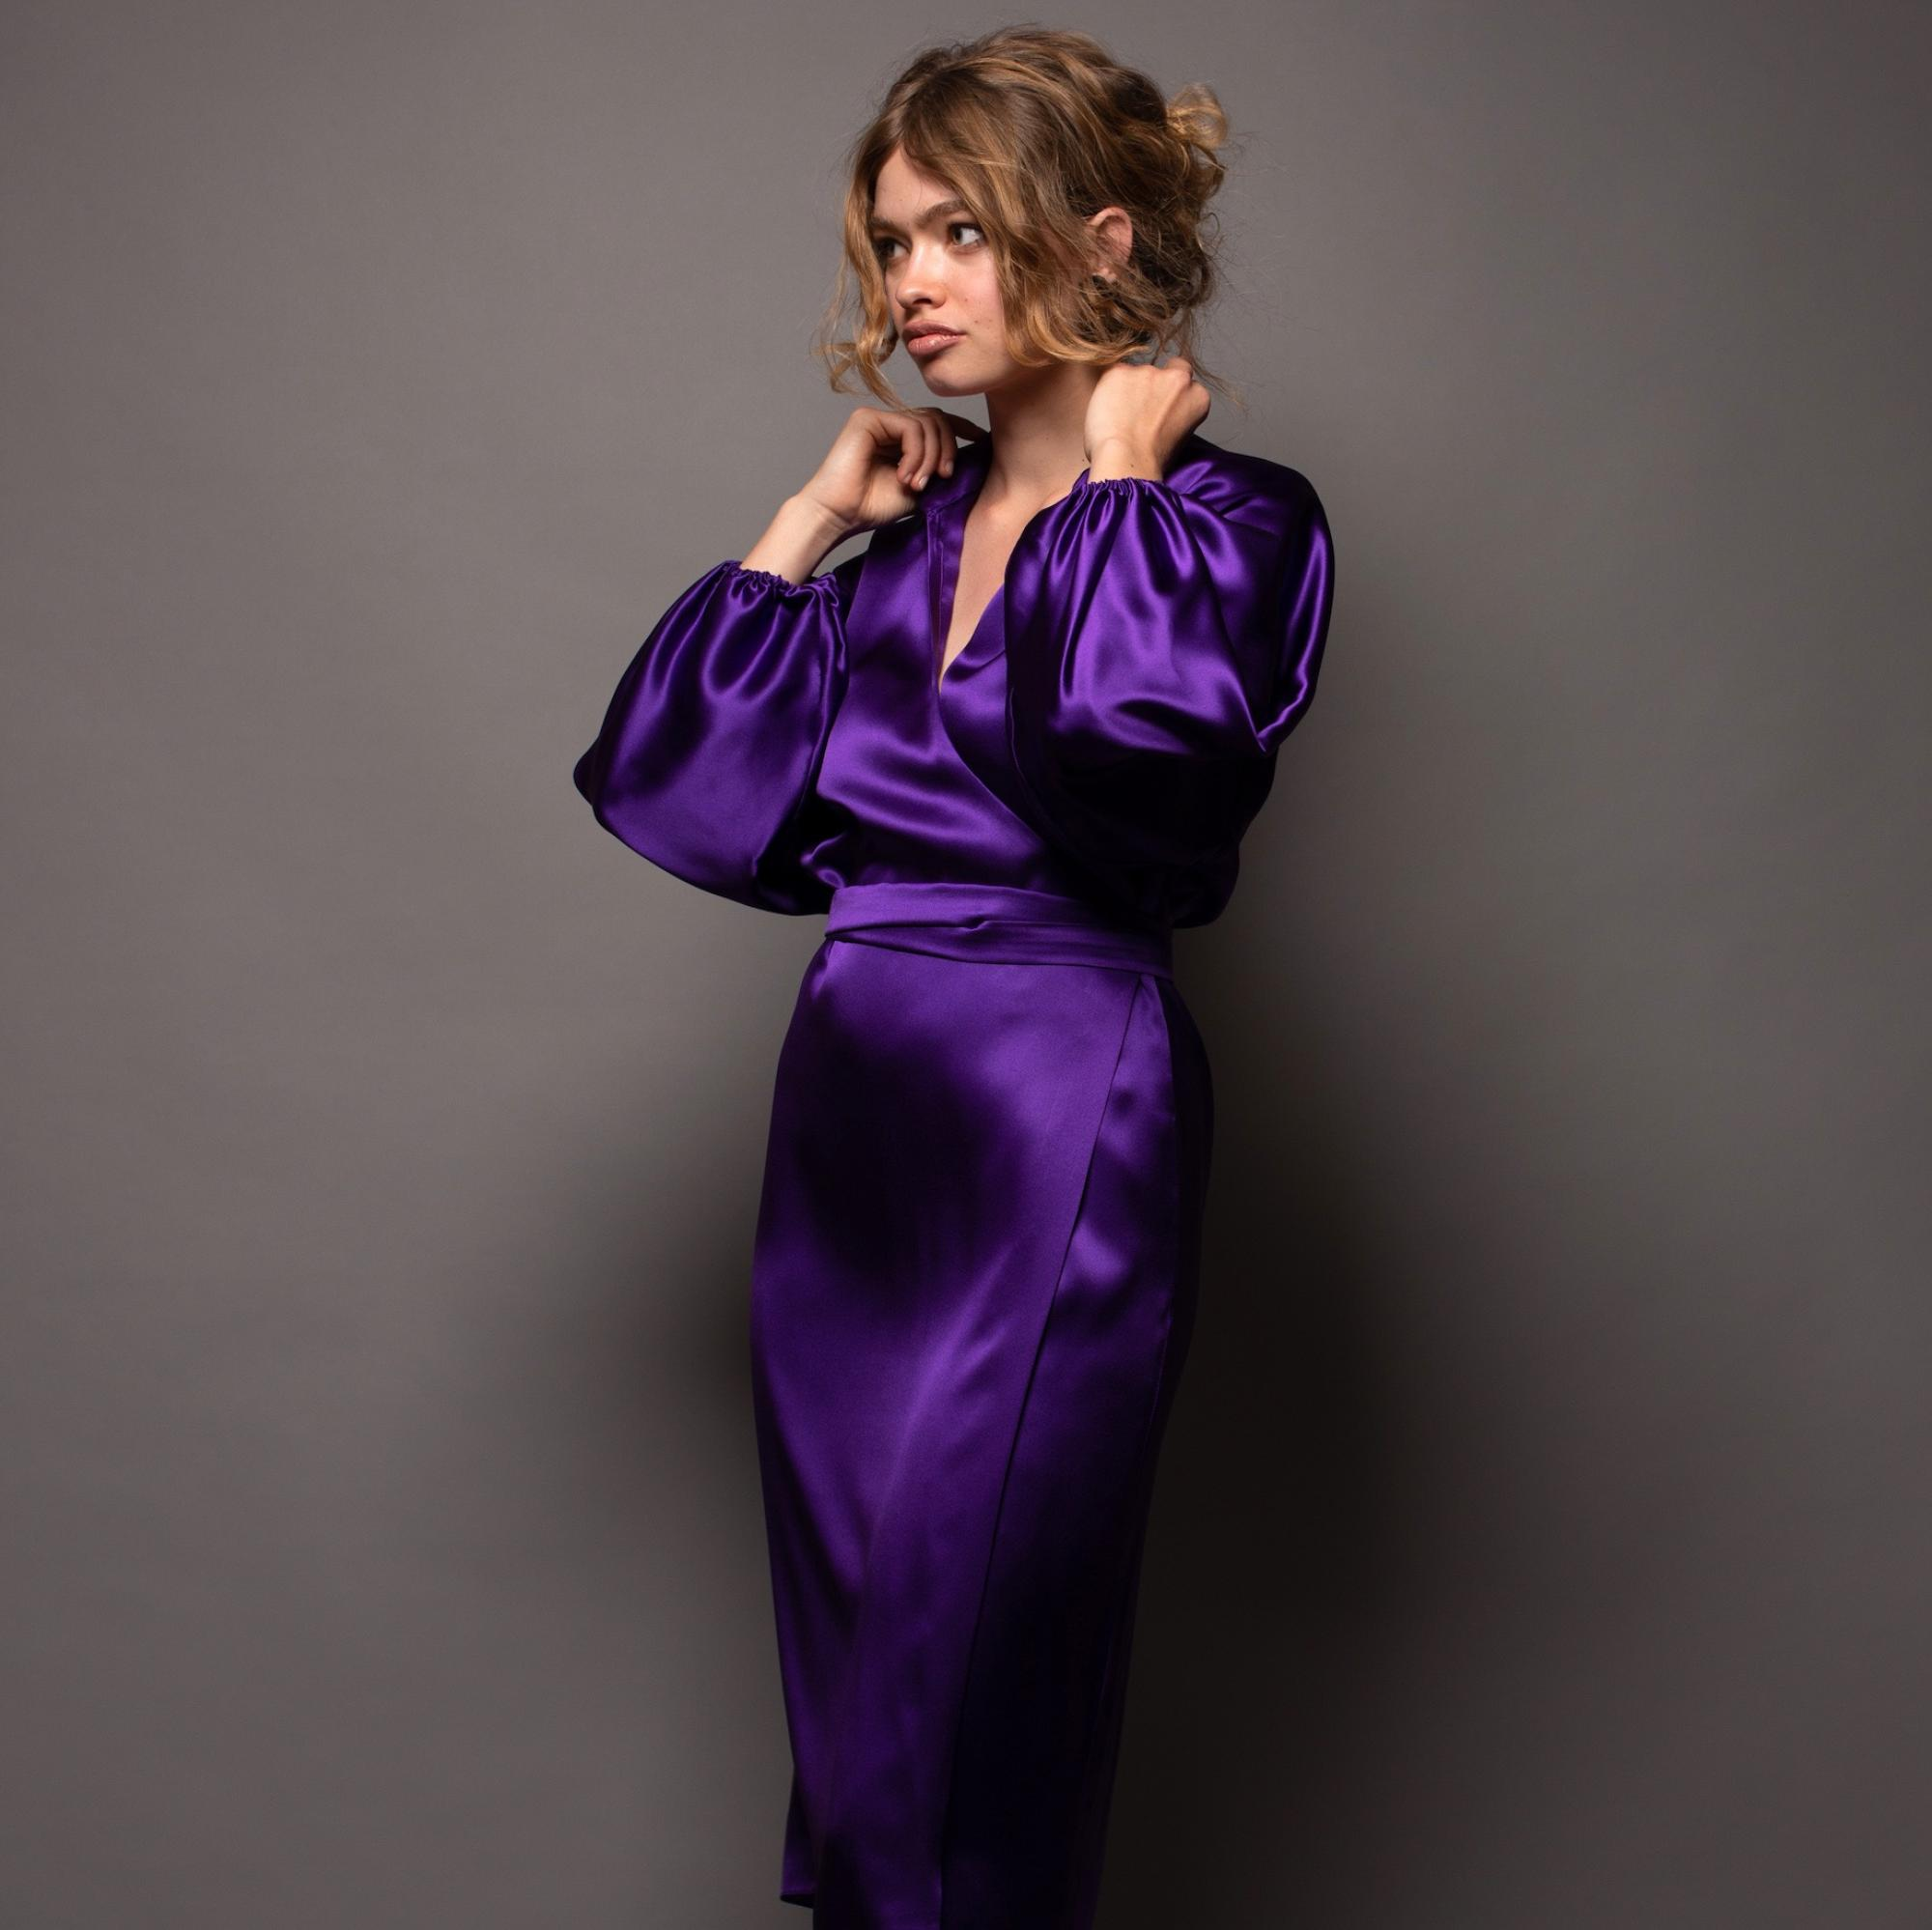 Stefanie savary - sustainable luxury dresses, silk purple wrap dress, midi violet silk dress, plus size silk midi dress